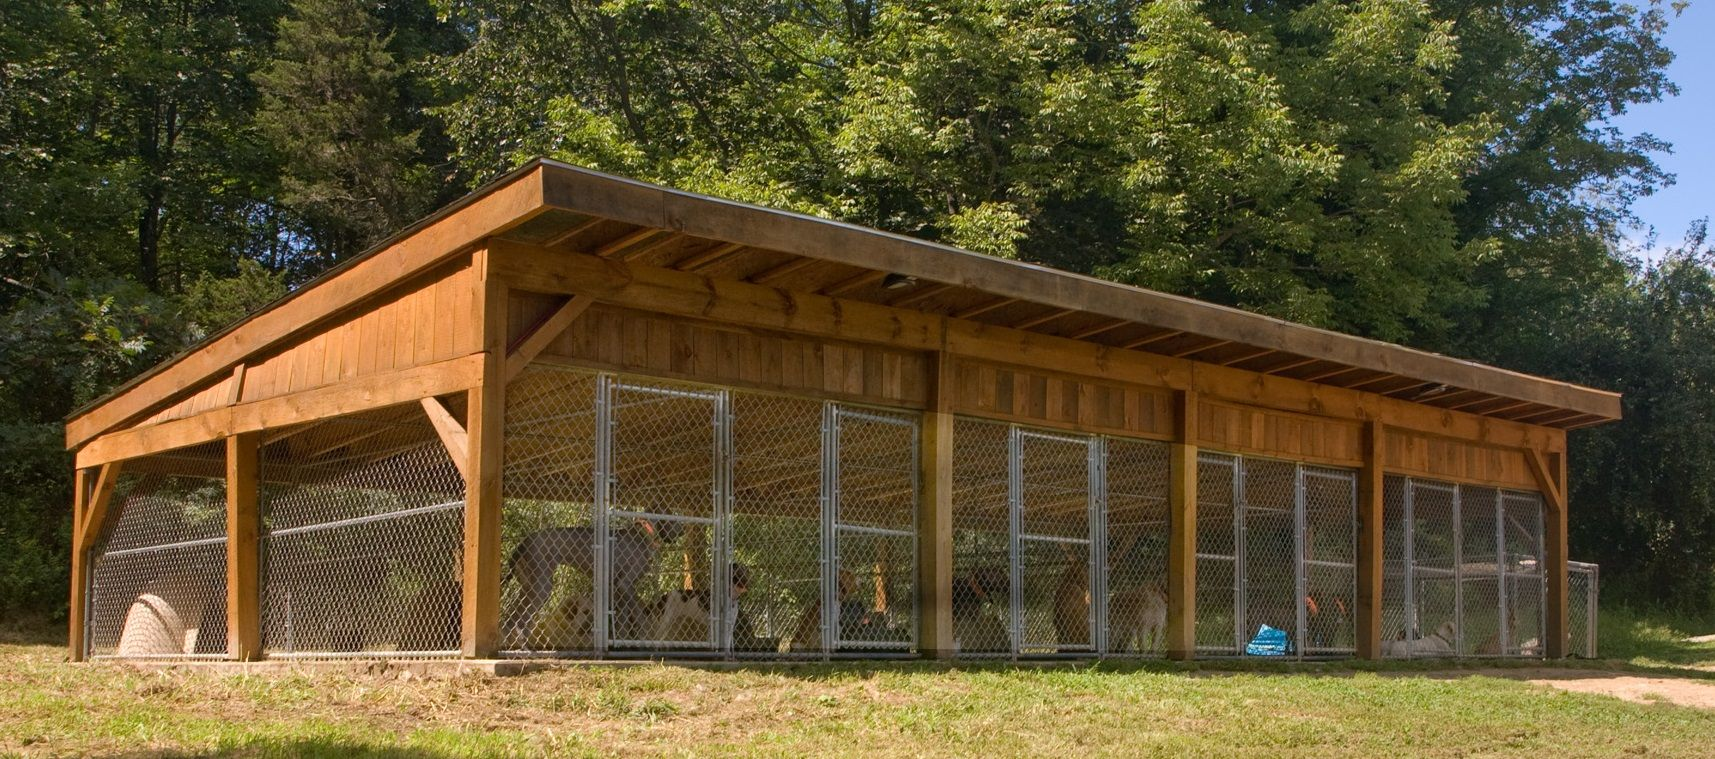 Hunting dog kennel designs bing images dog kennel for What is dog boarding